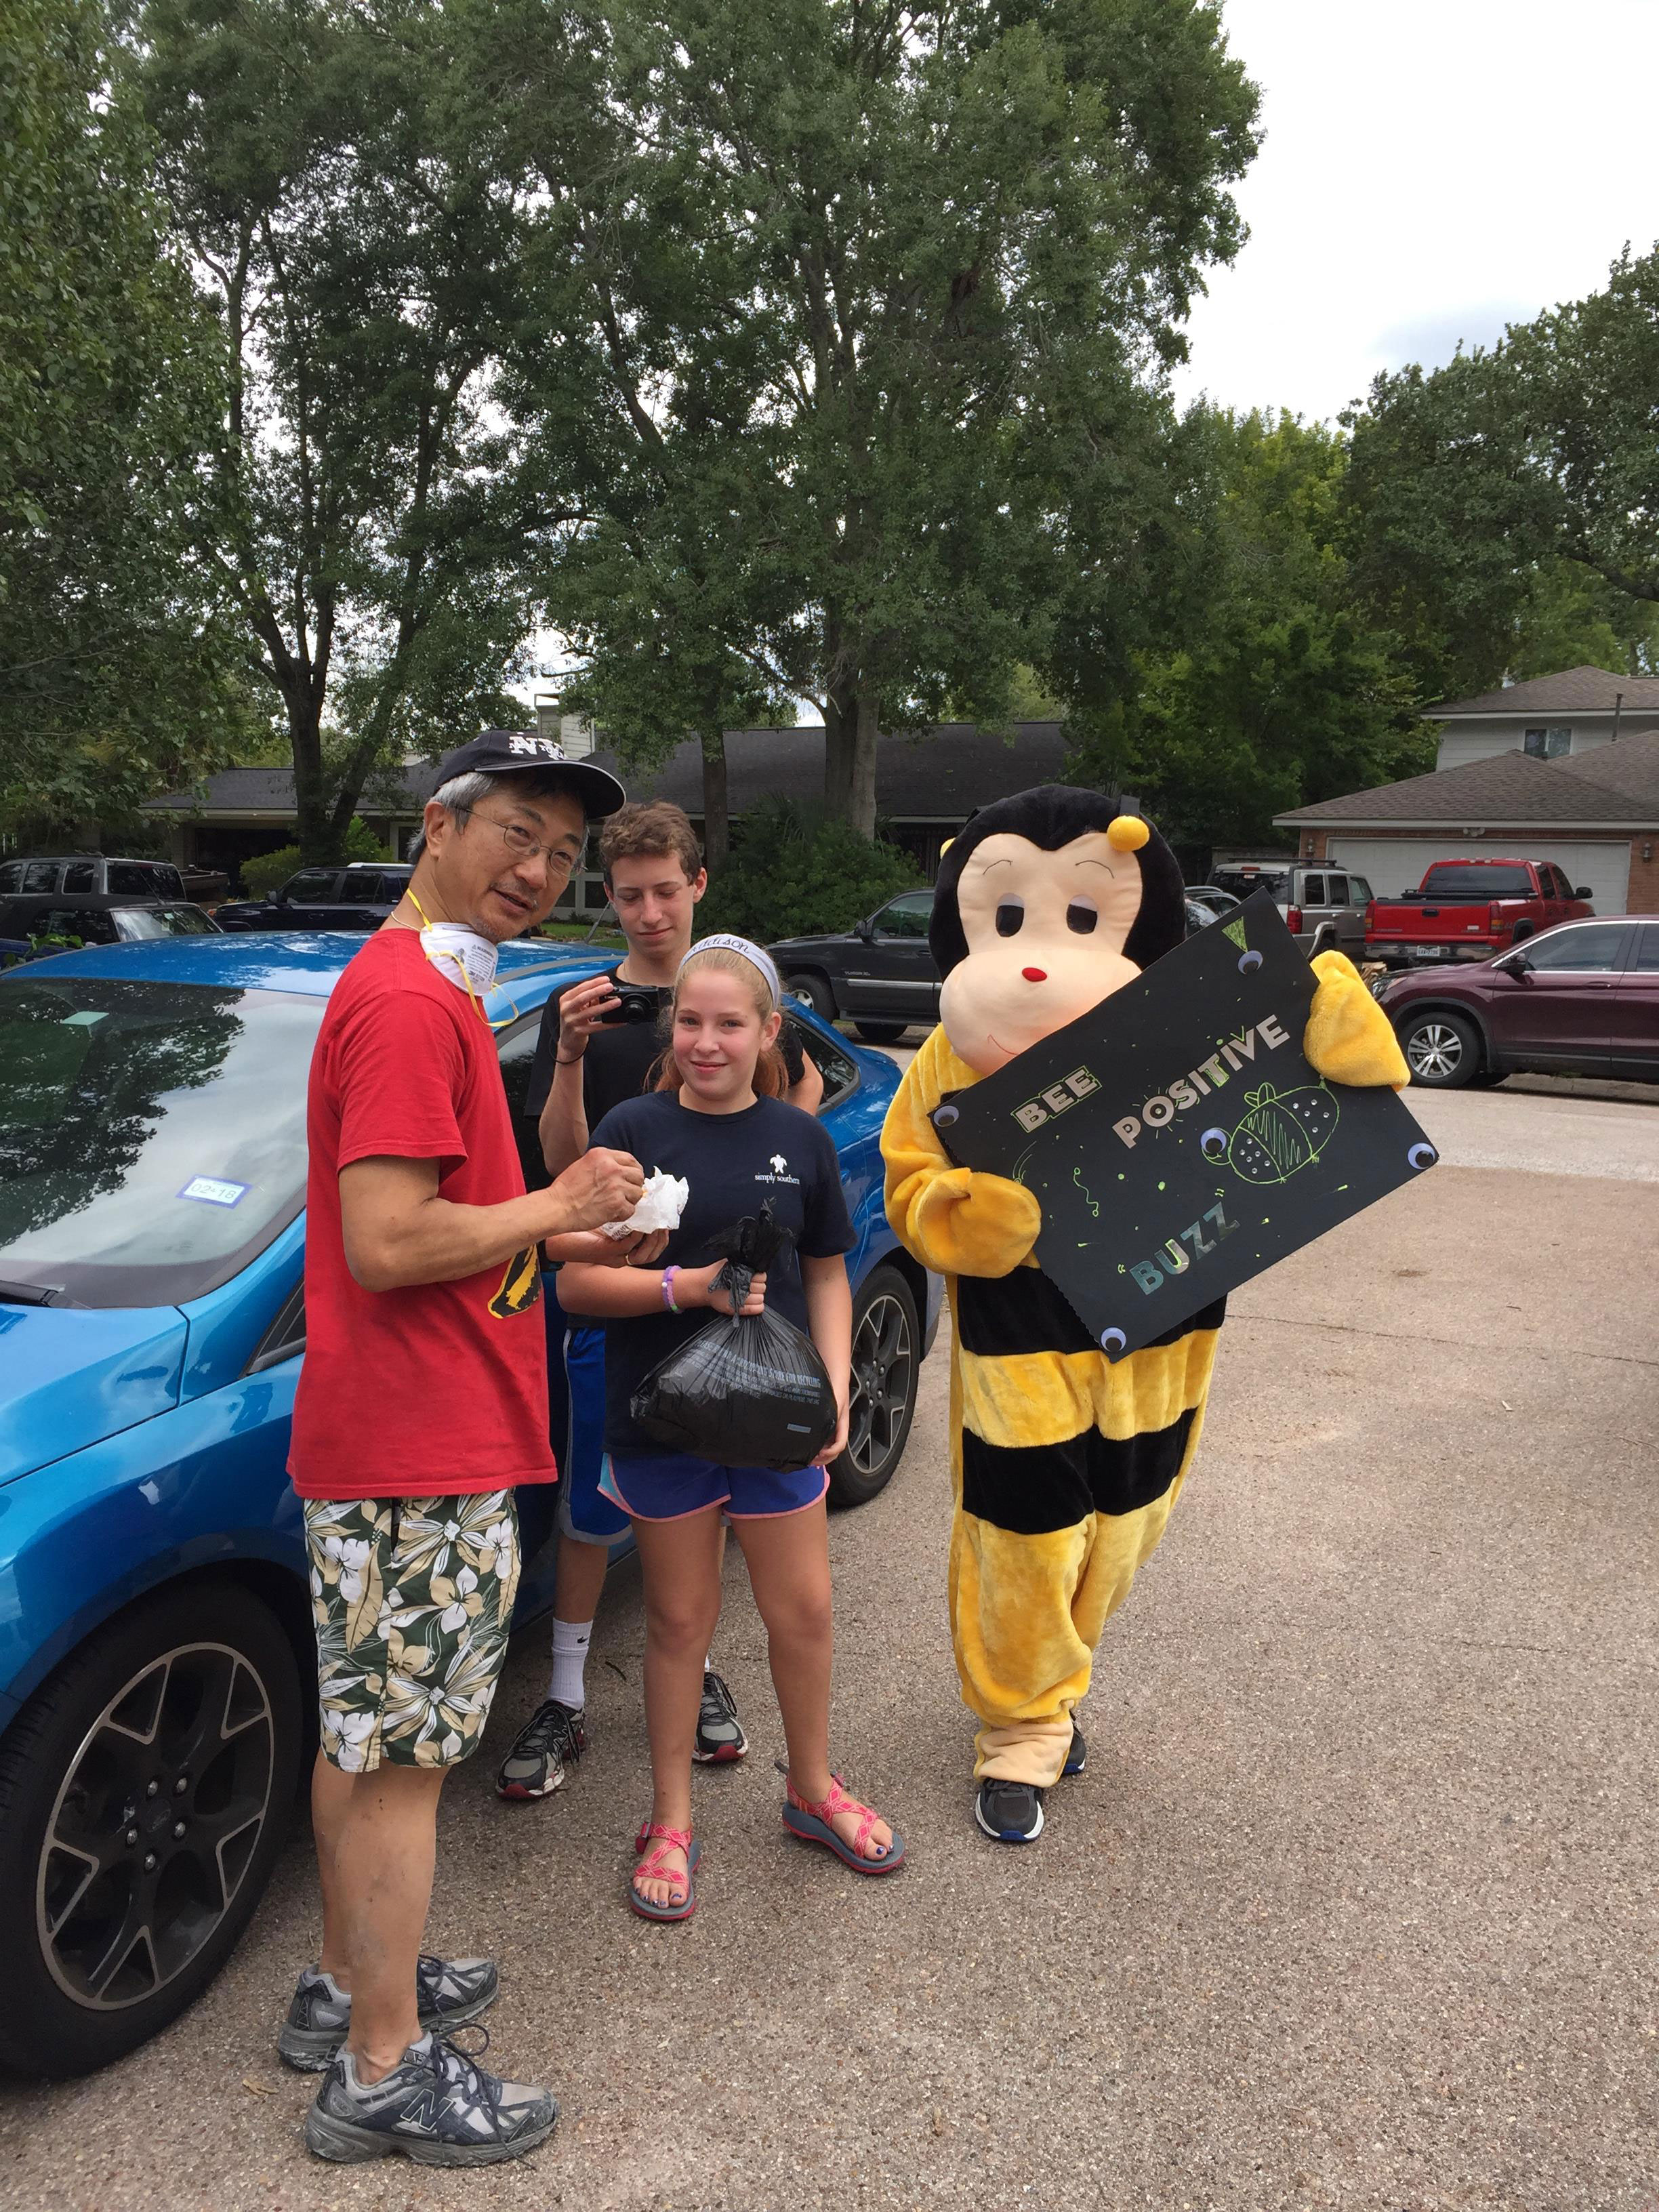 <div class='meta'><div class='origin-logo' data-origin='none'></div><span class='caption-text' data-credit='Stephanie Ochoa'>A person dressed as a bee in the Willow Meadows subdivision was handing out free food with a message: ''Bee positive.''</span></div>